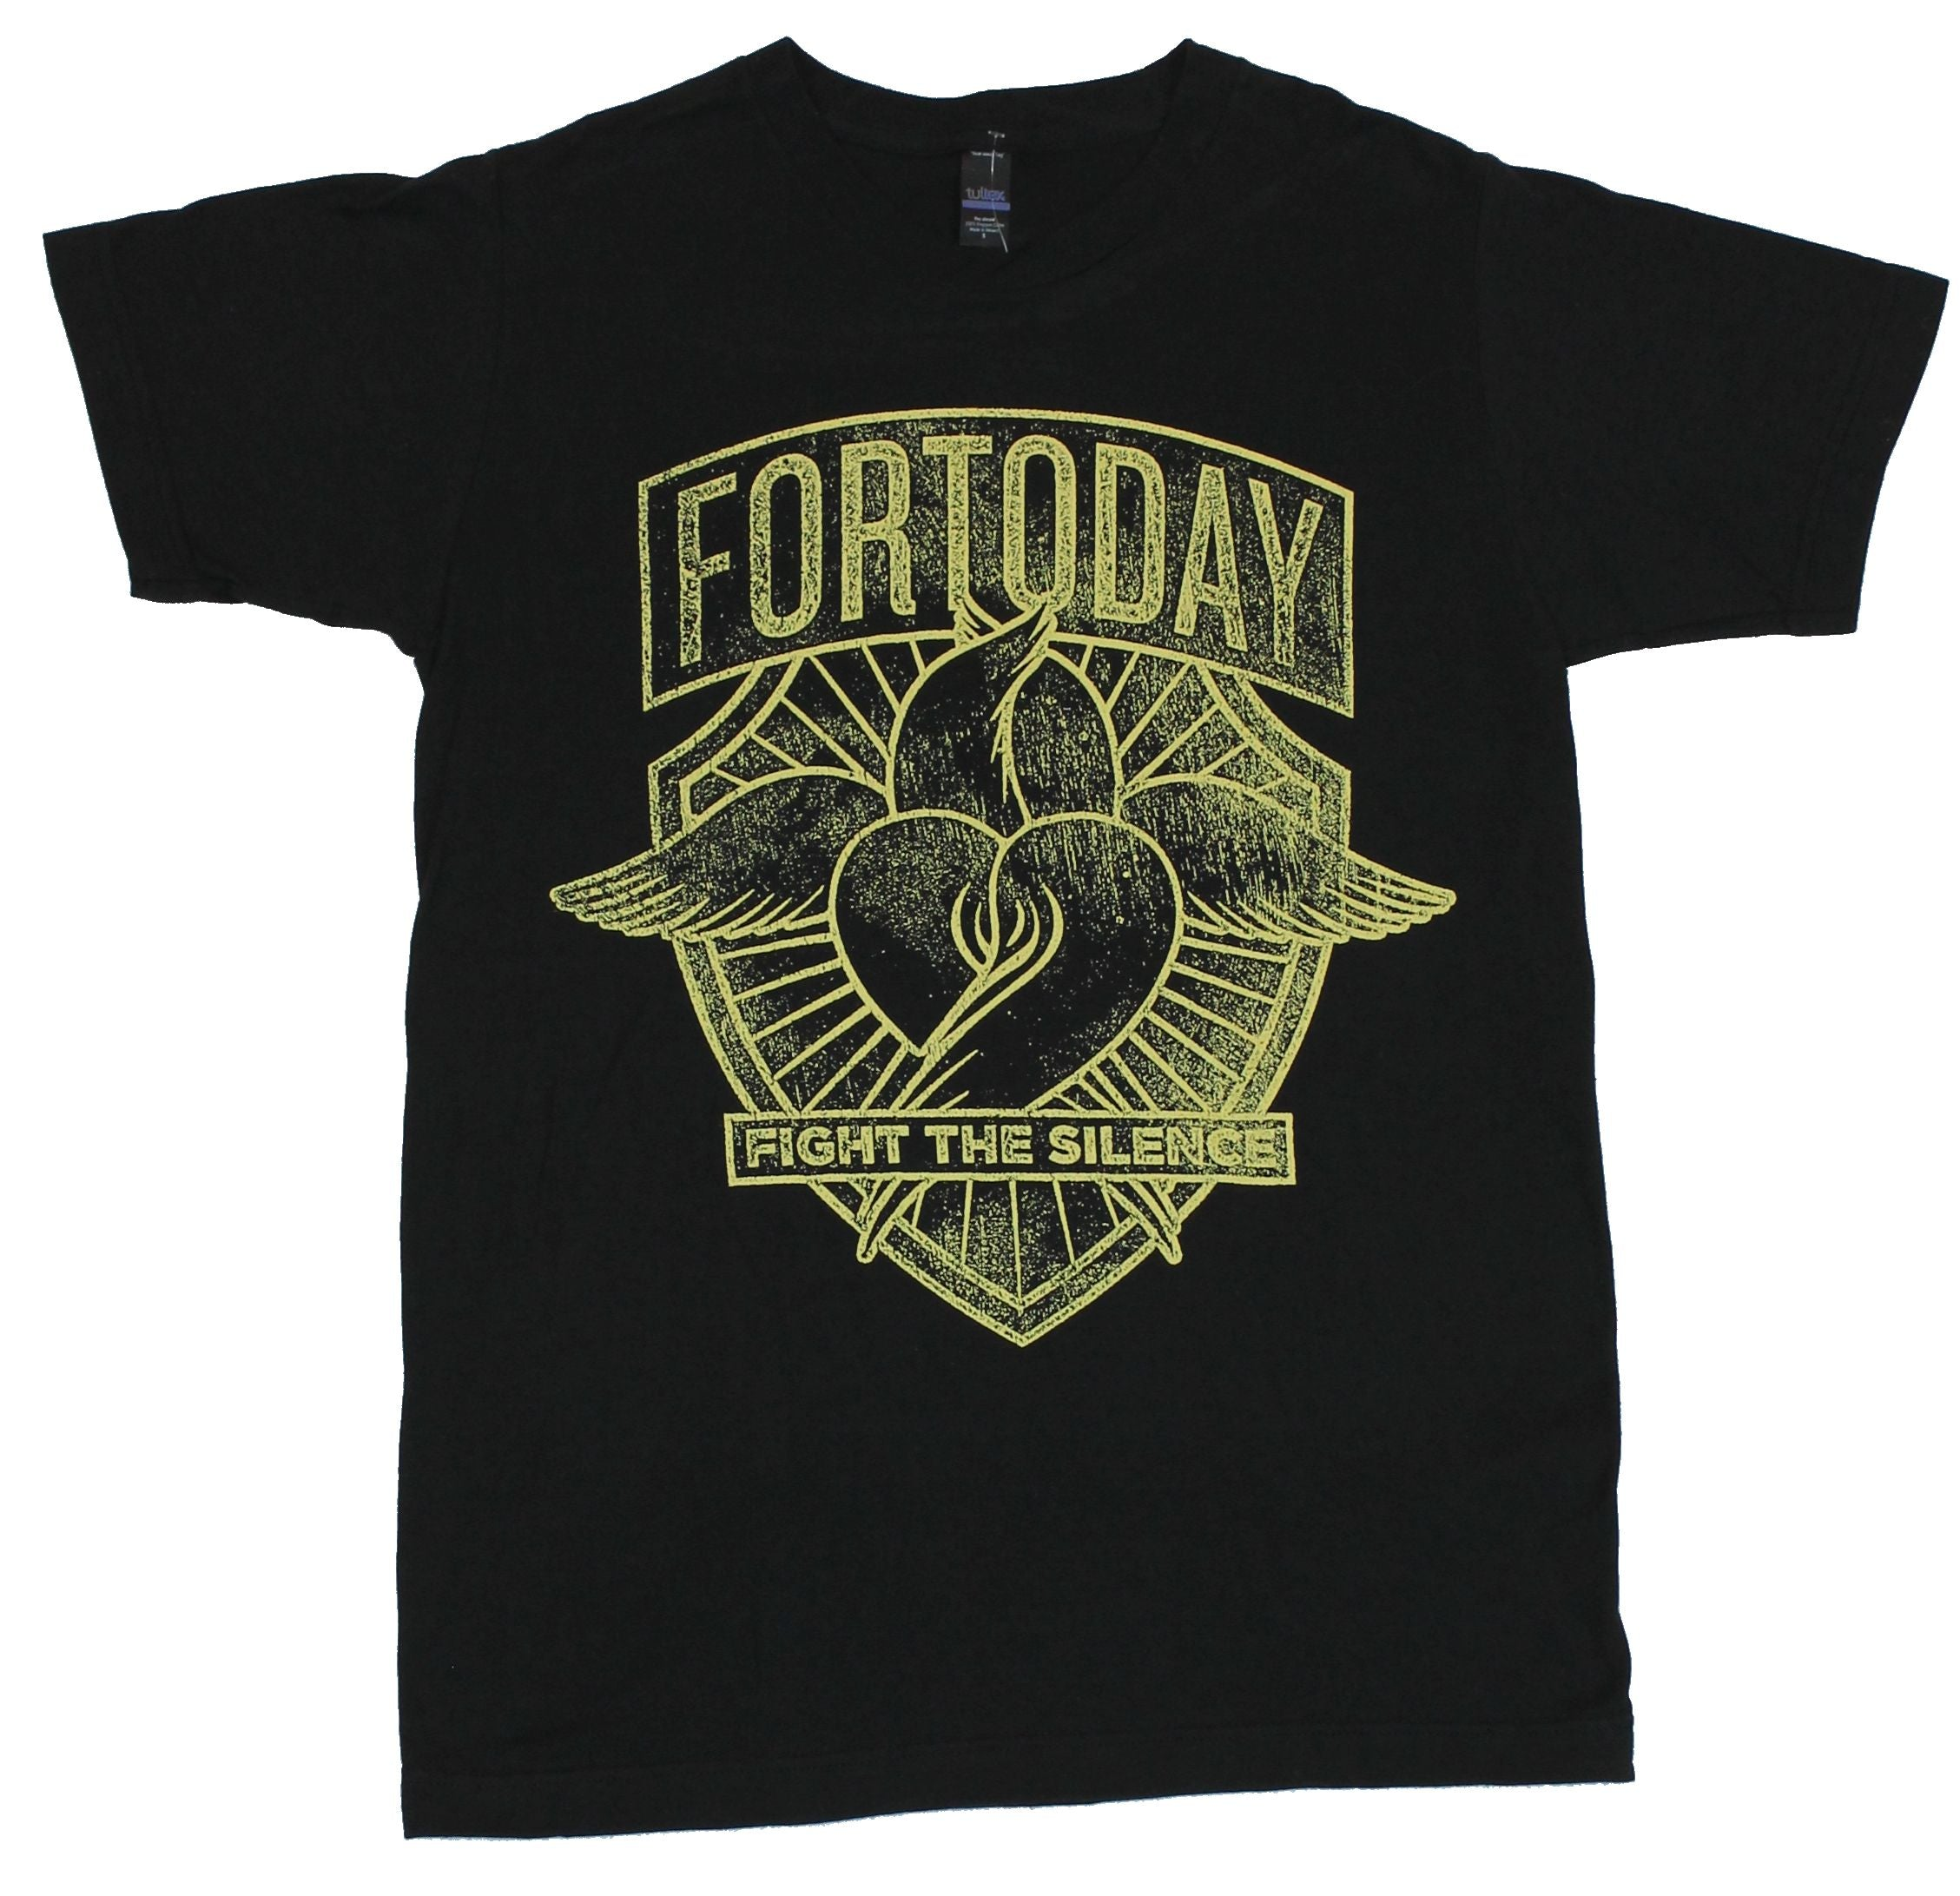 For Today Mens T-Shirt - Fight the Silence Distressed Winged Heart Image